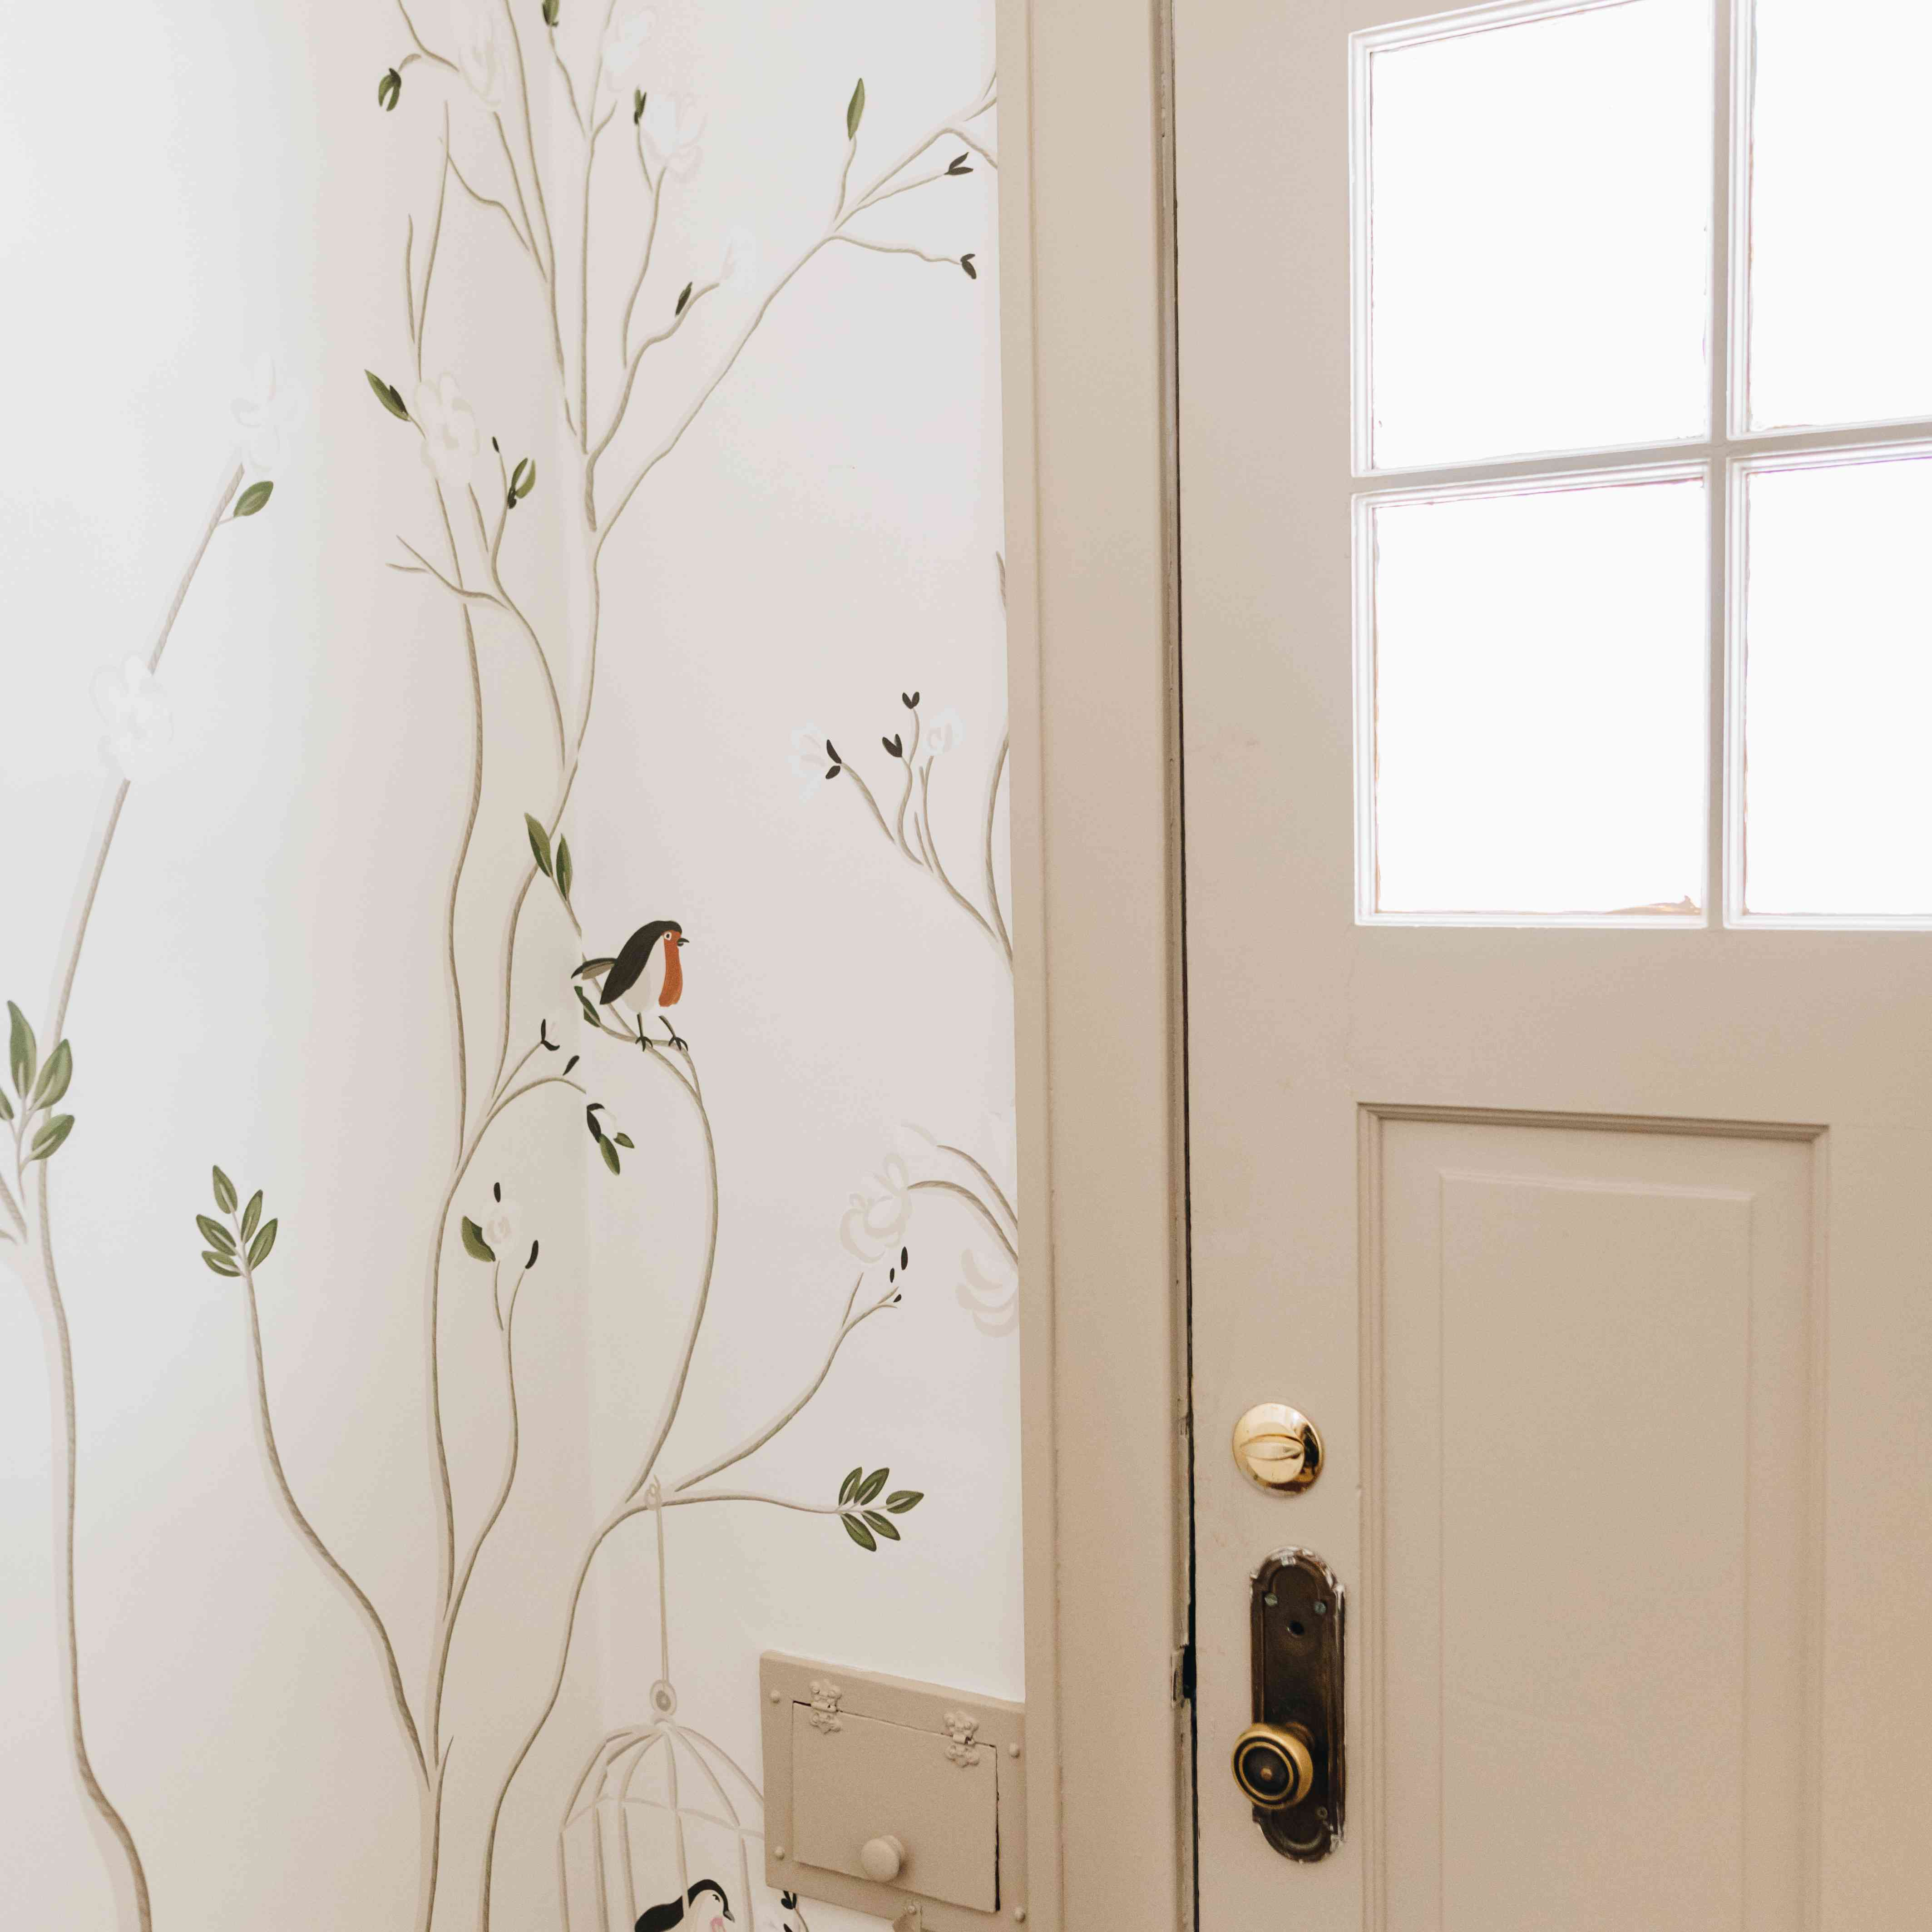 Entryway with hand-painted wallpaper by She She